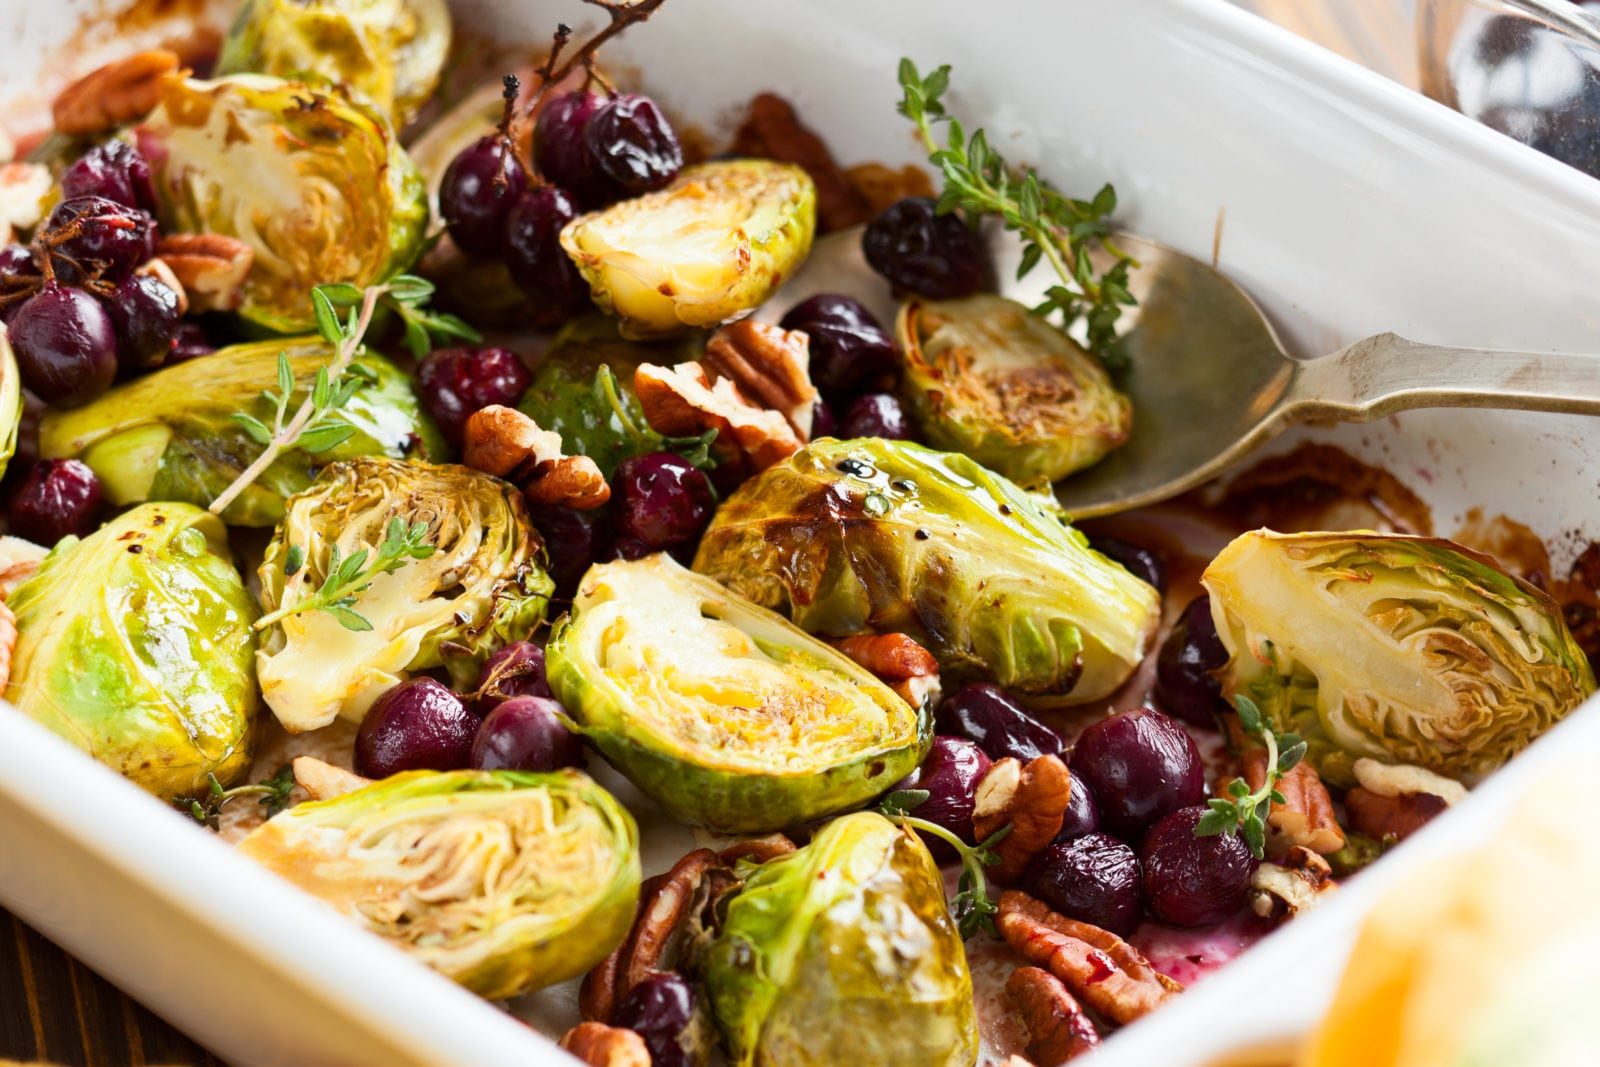 Vegetarian Diet: Roasted Brussels Sprouts